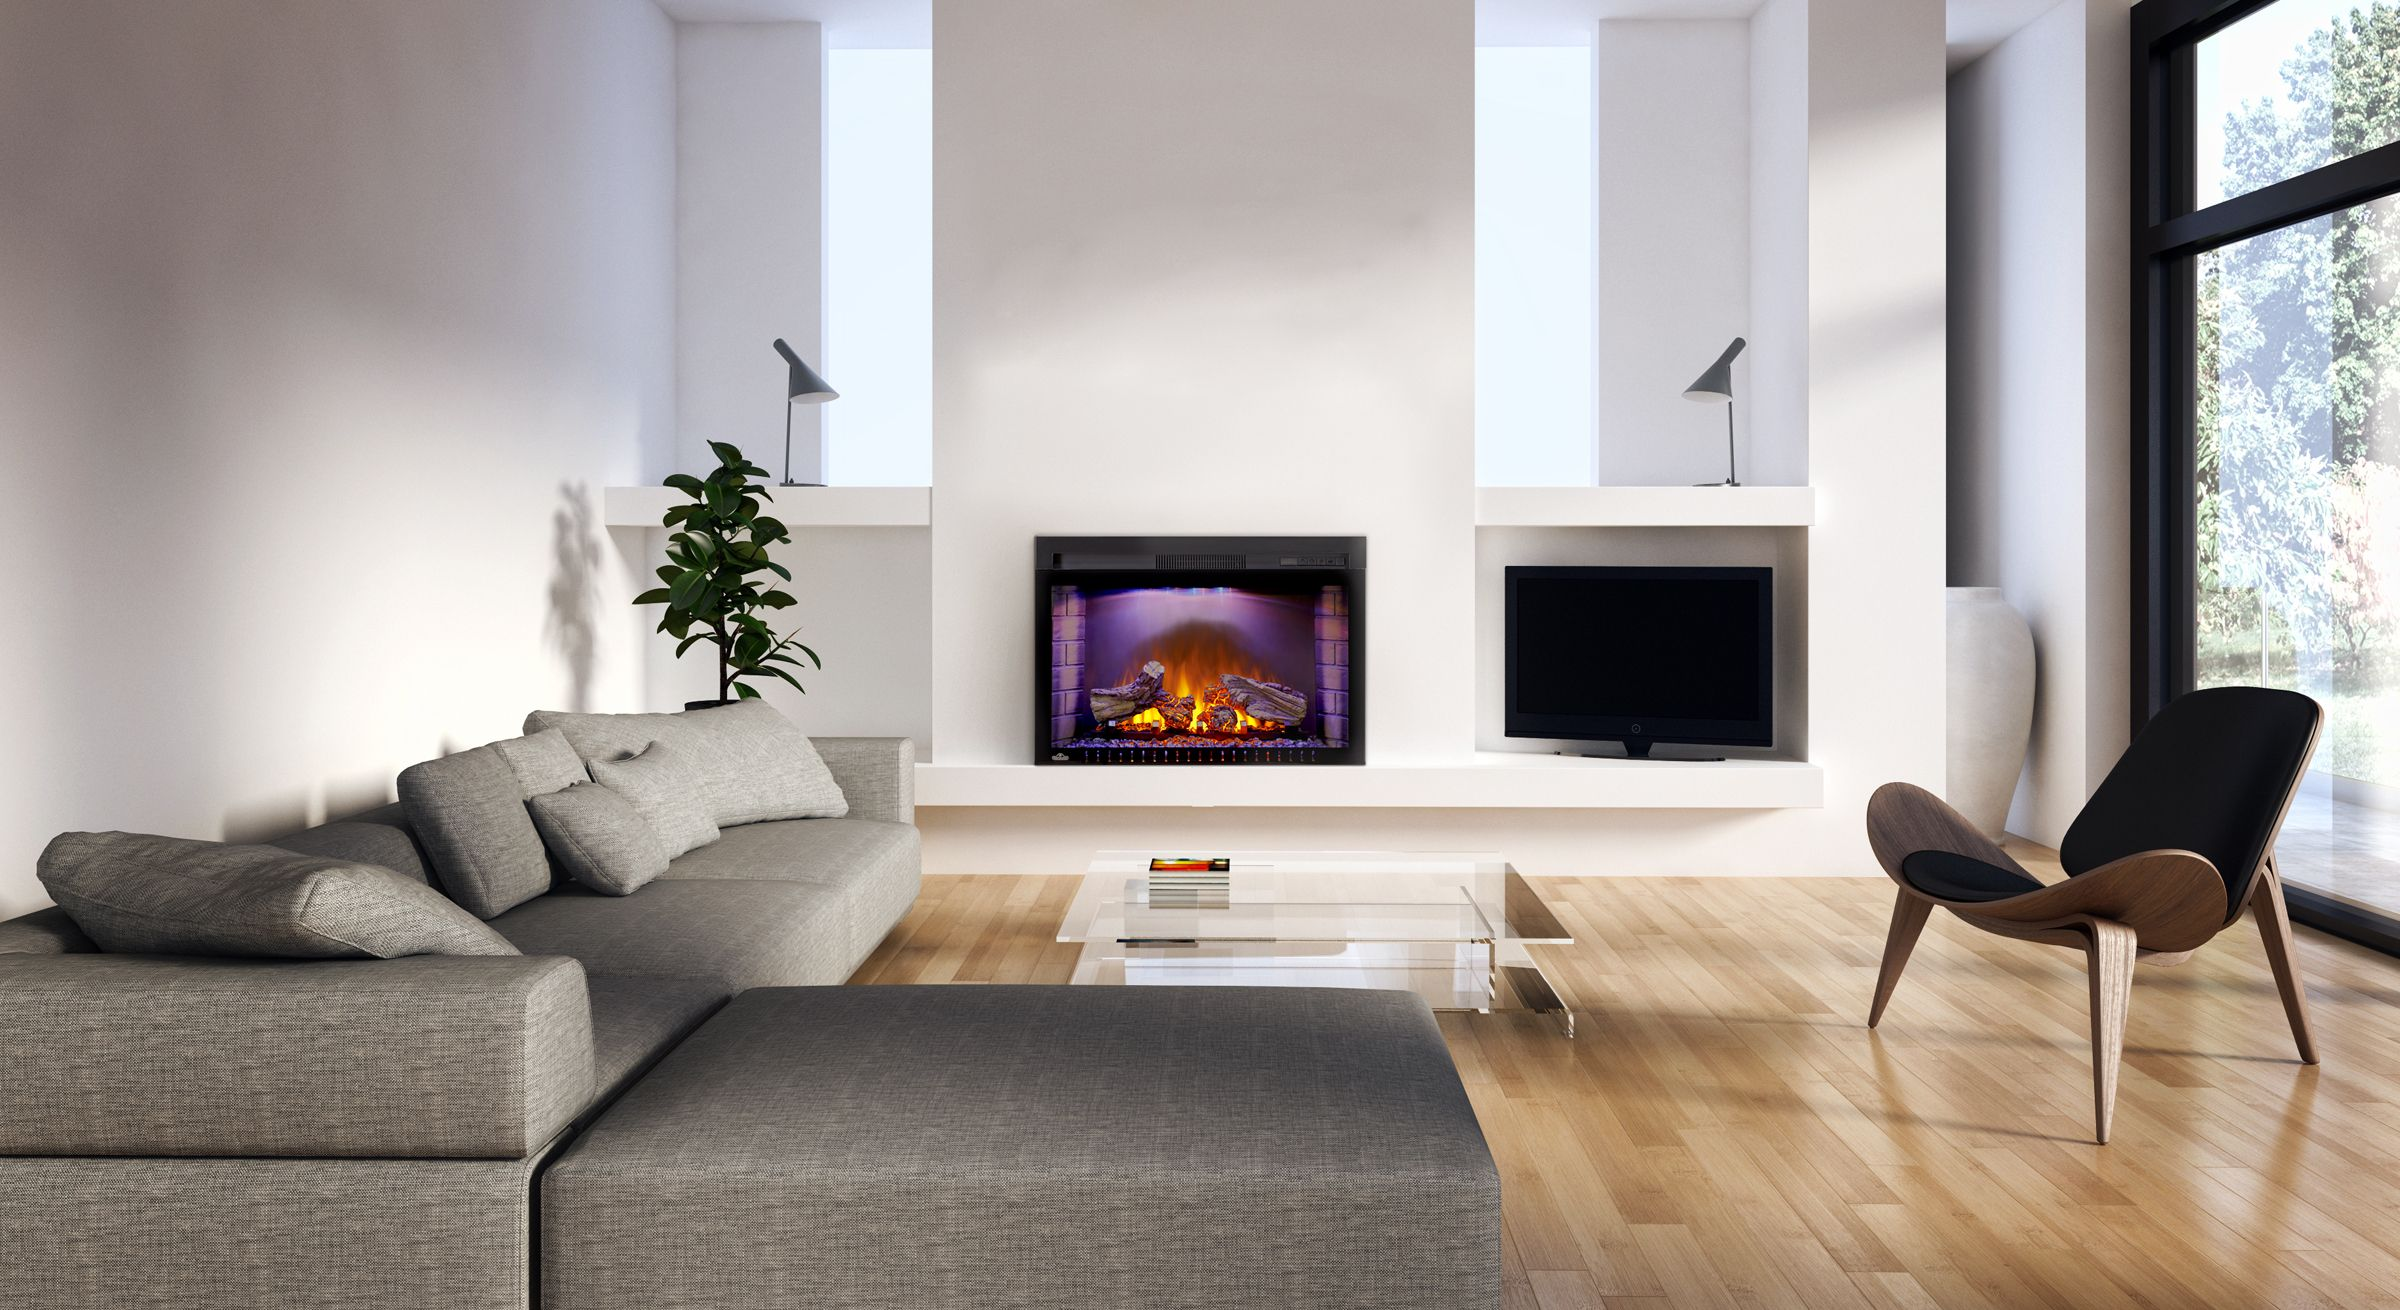 Imagine completely transforming your living space just by plugging ...